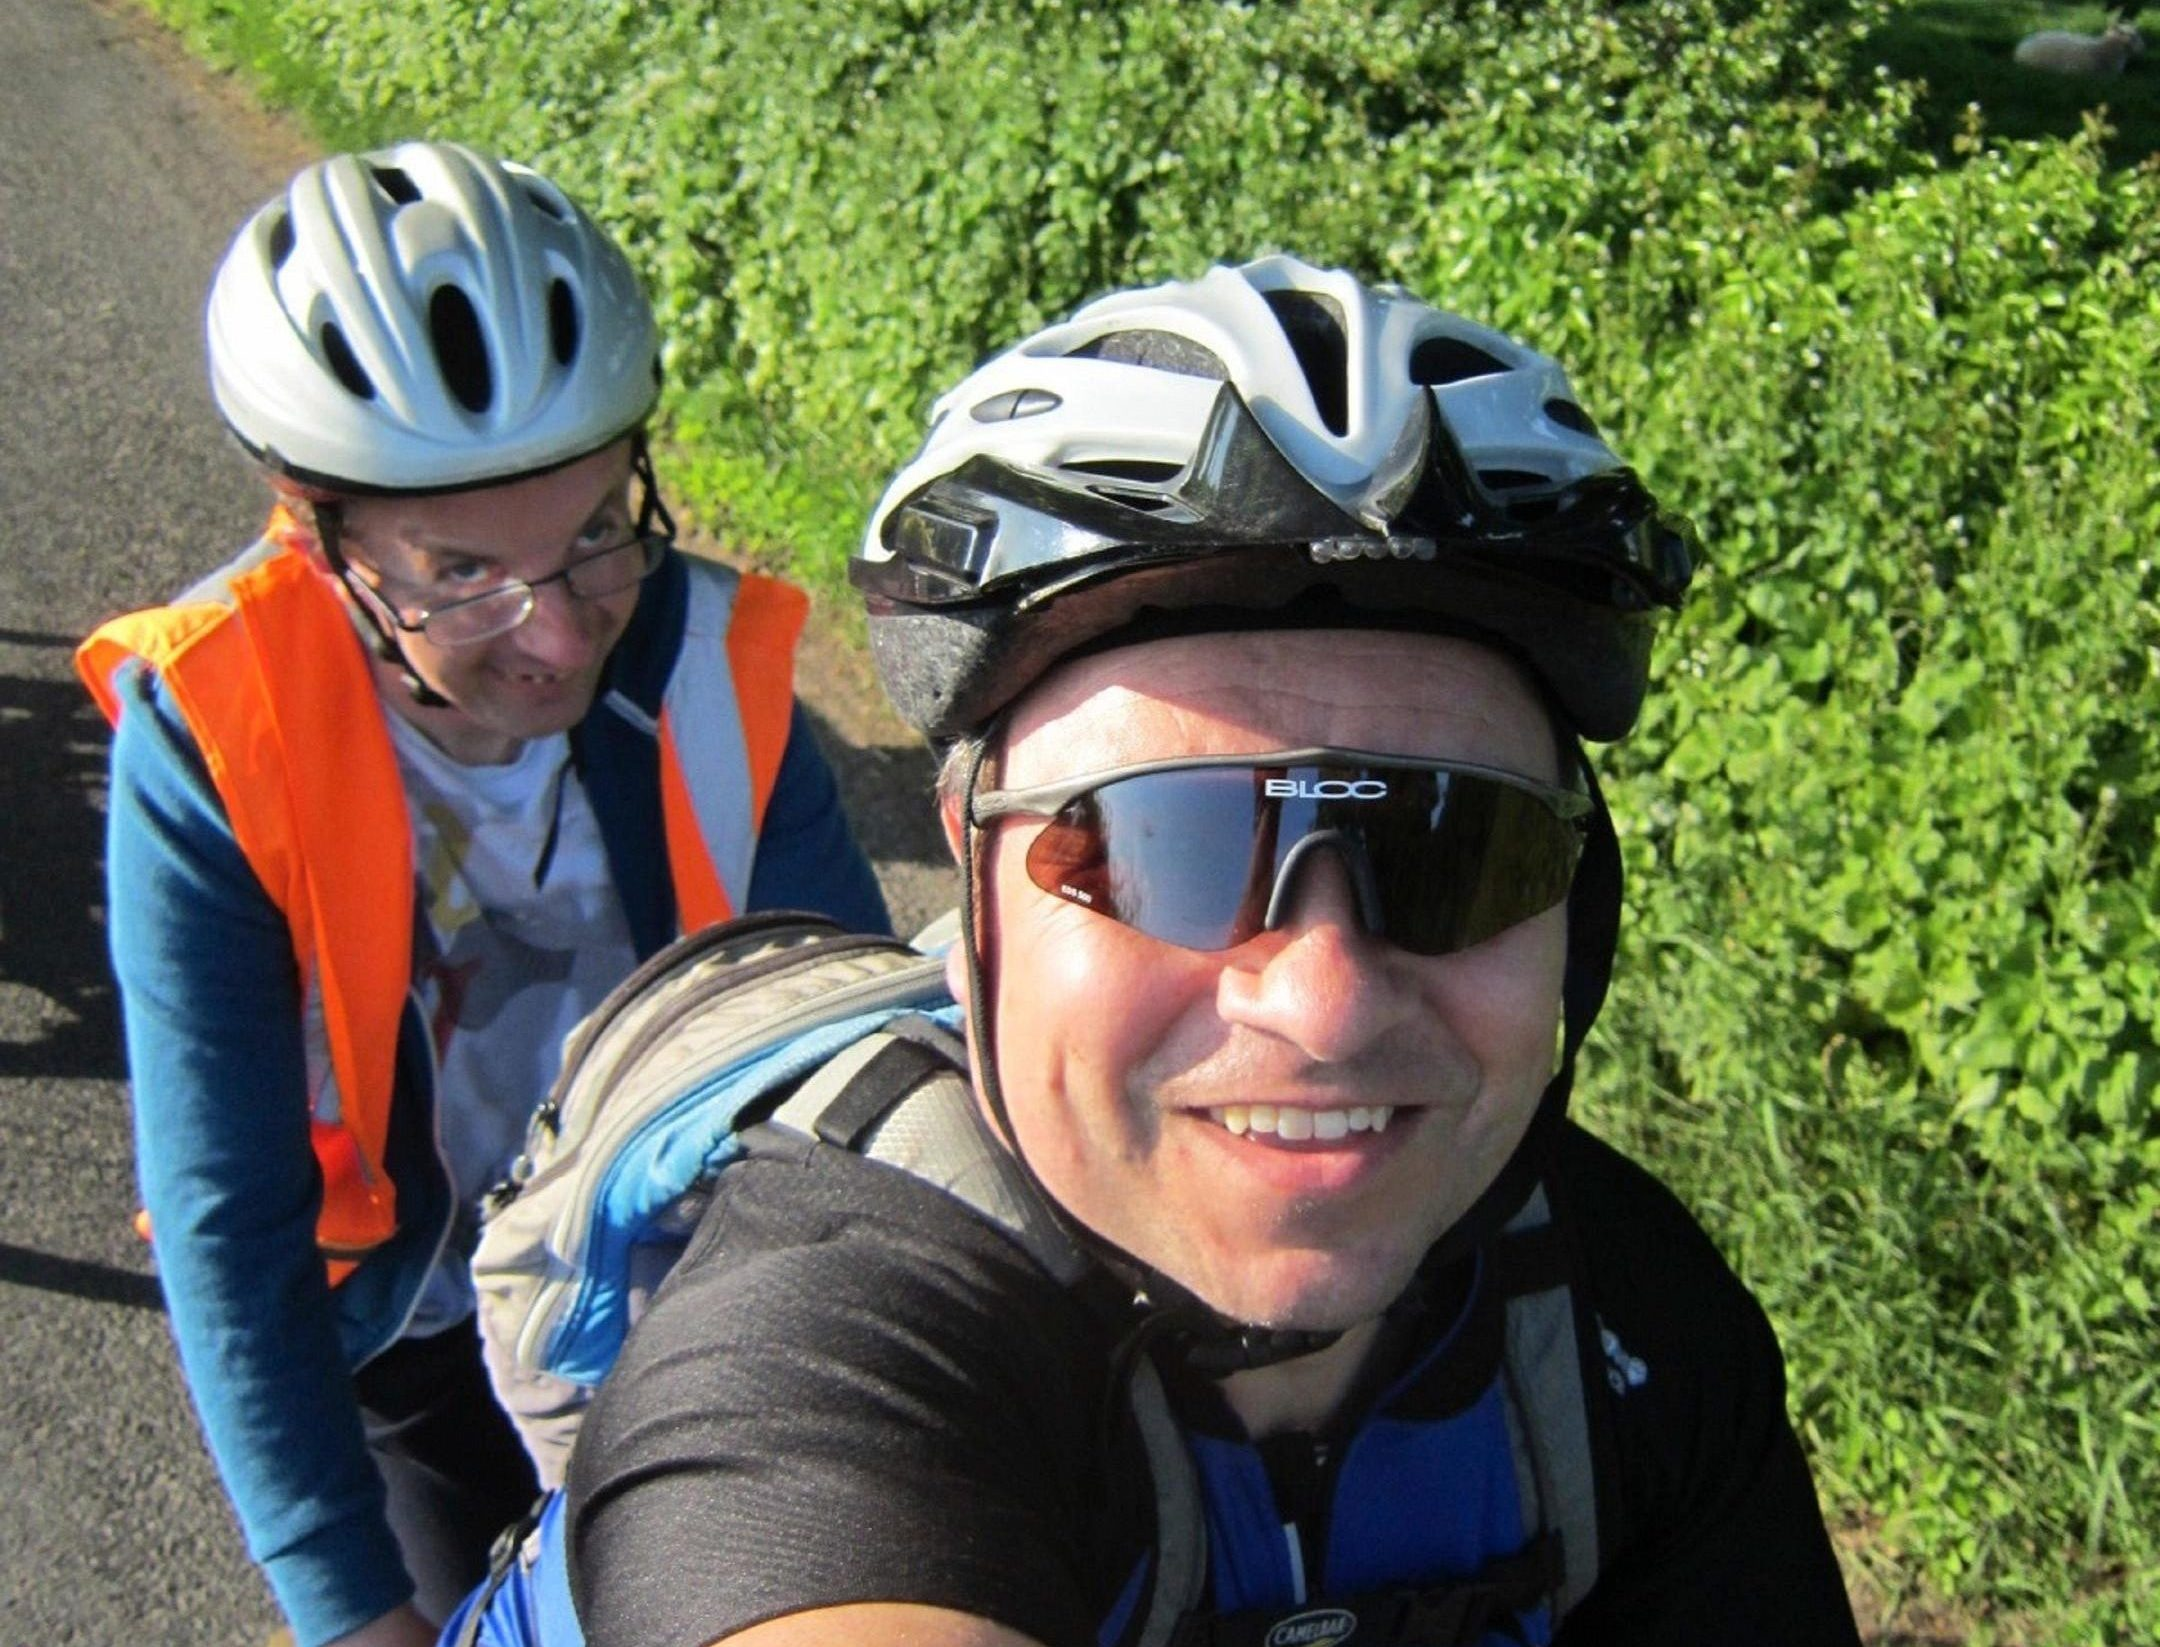 A close up of two people on a tandem riding by a hedgerow